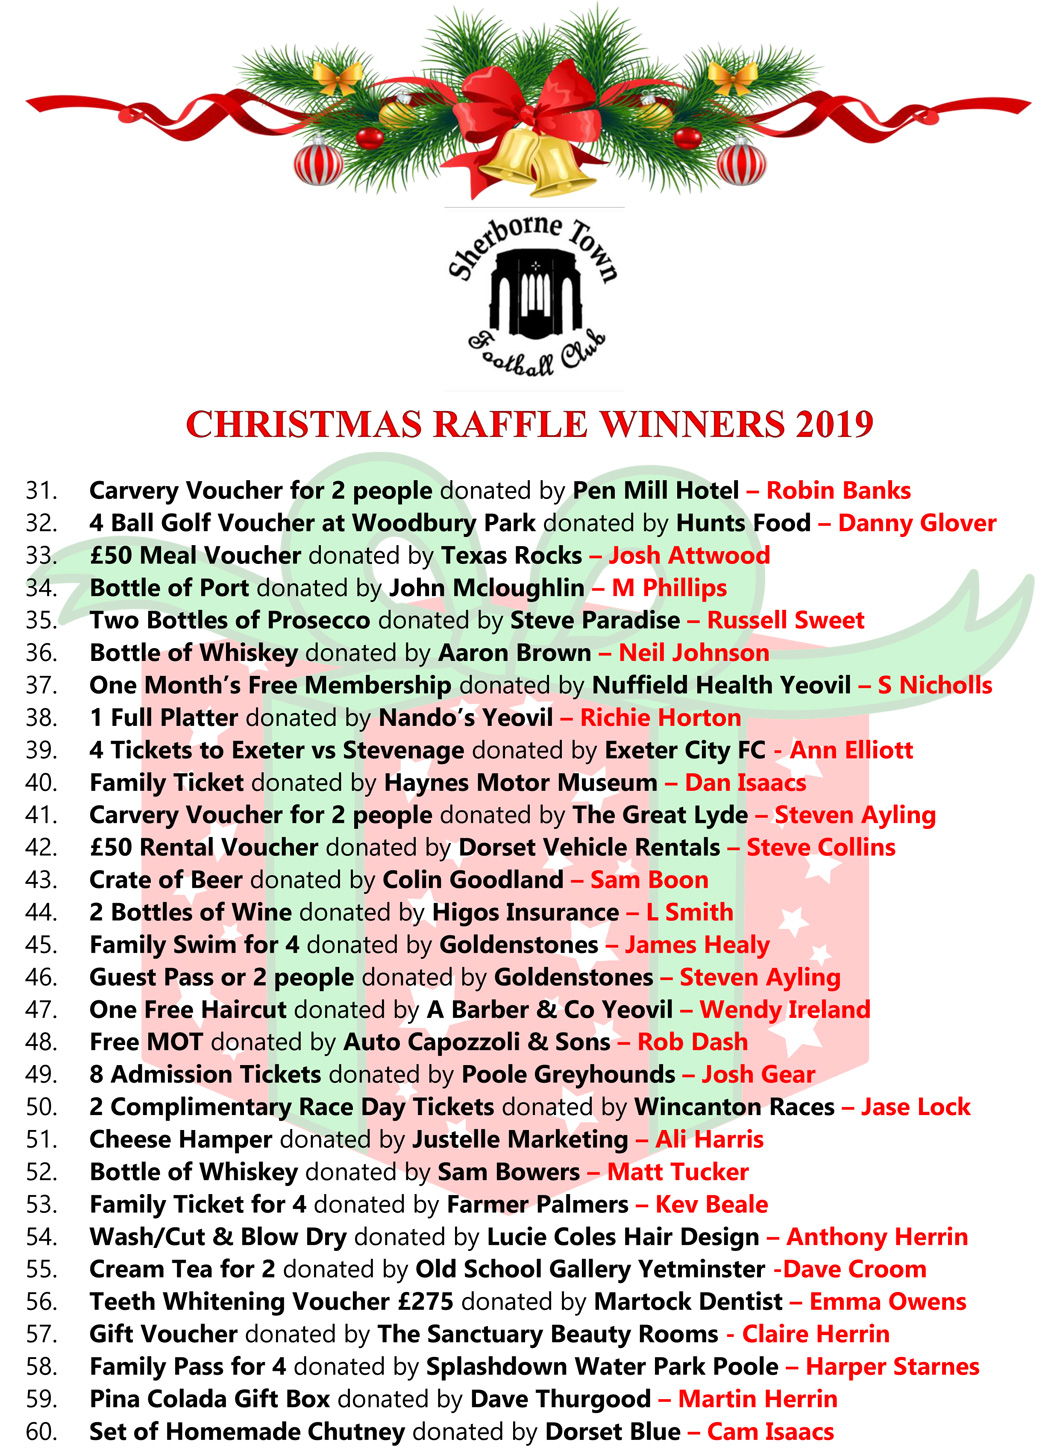 2019 Christmas Raffle Winners